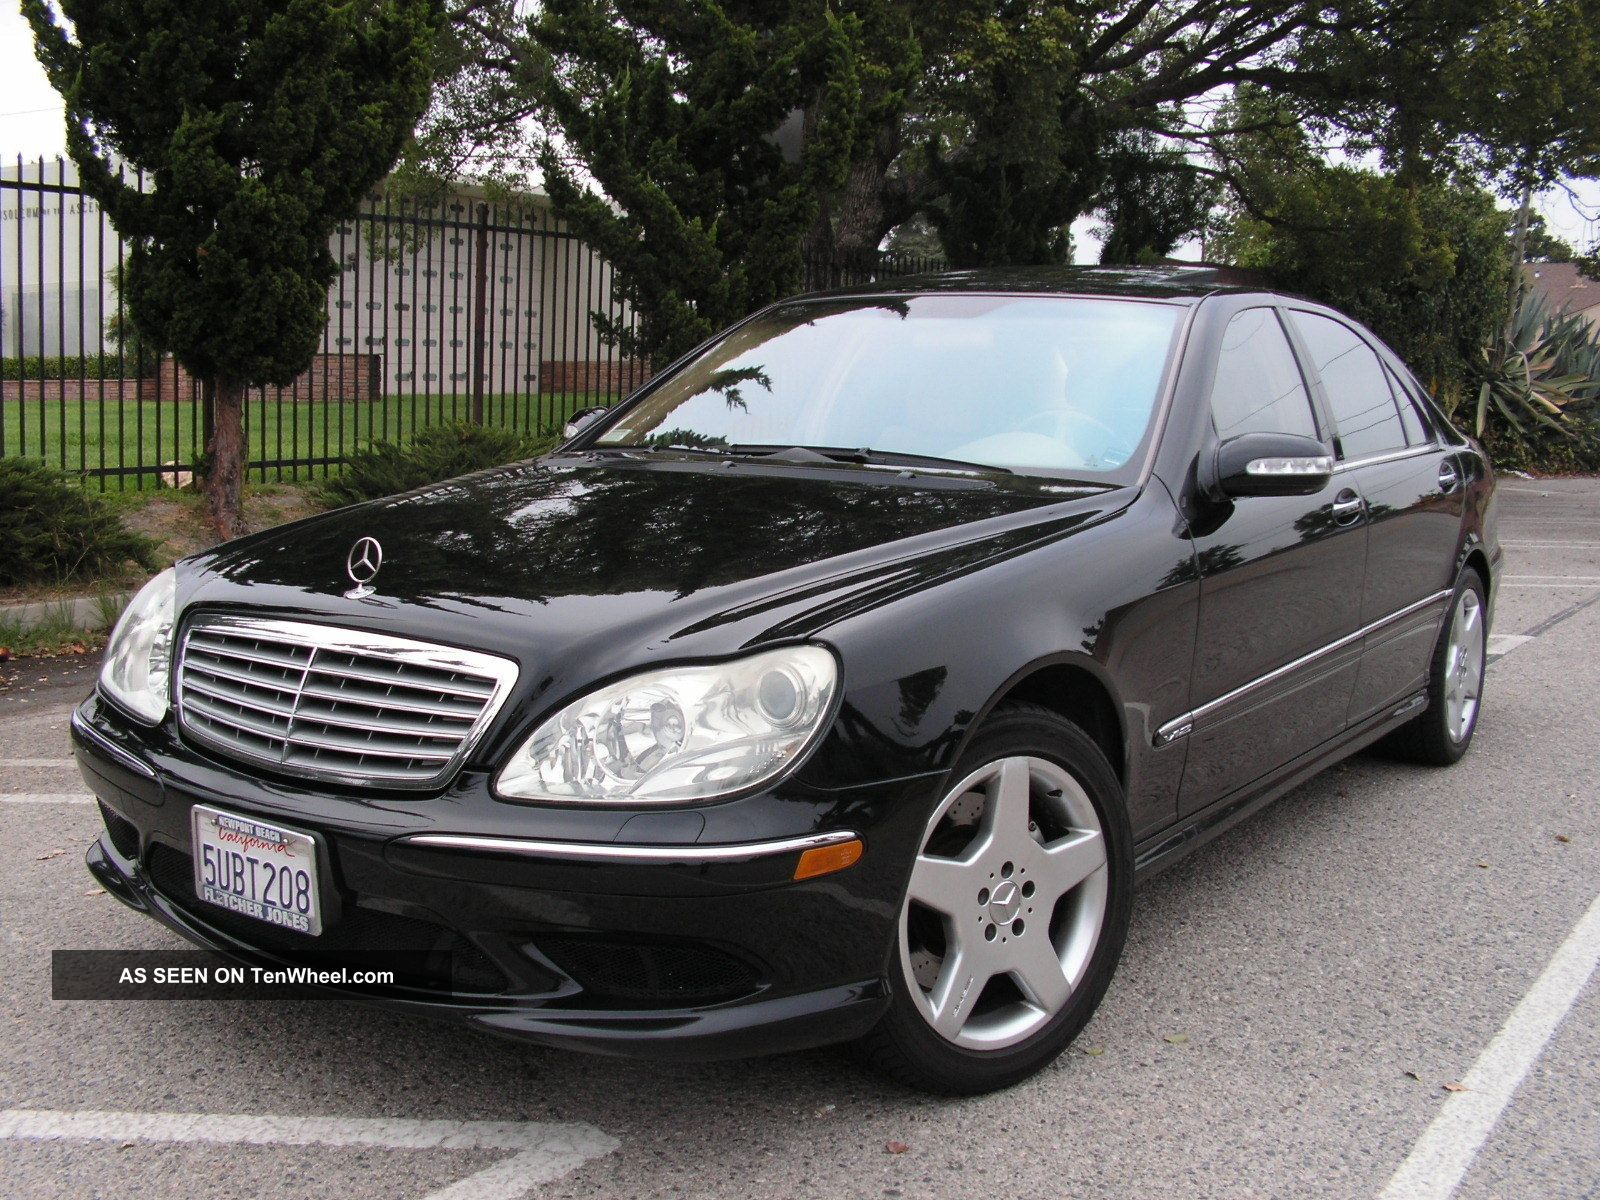 2003 mercedes benz s600 amg twin turbo 493hp 590tq for Mercedes benz s 600 amg